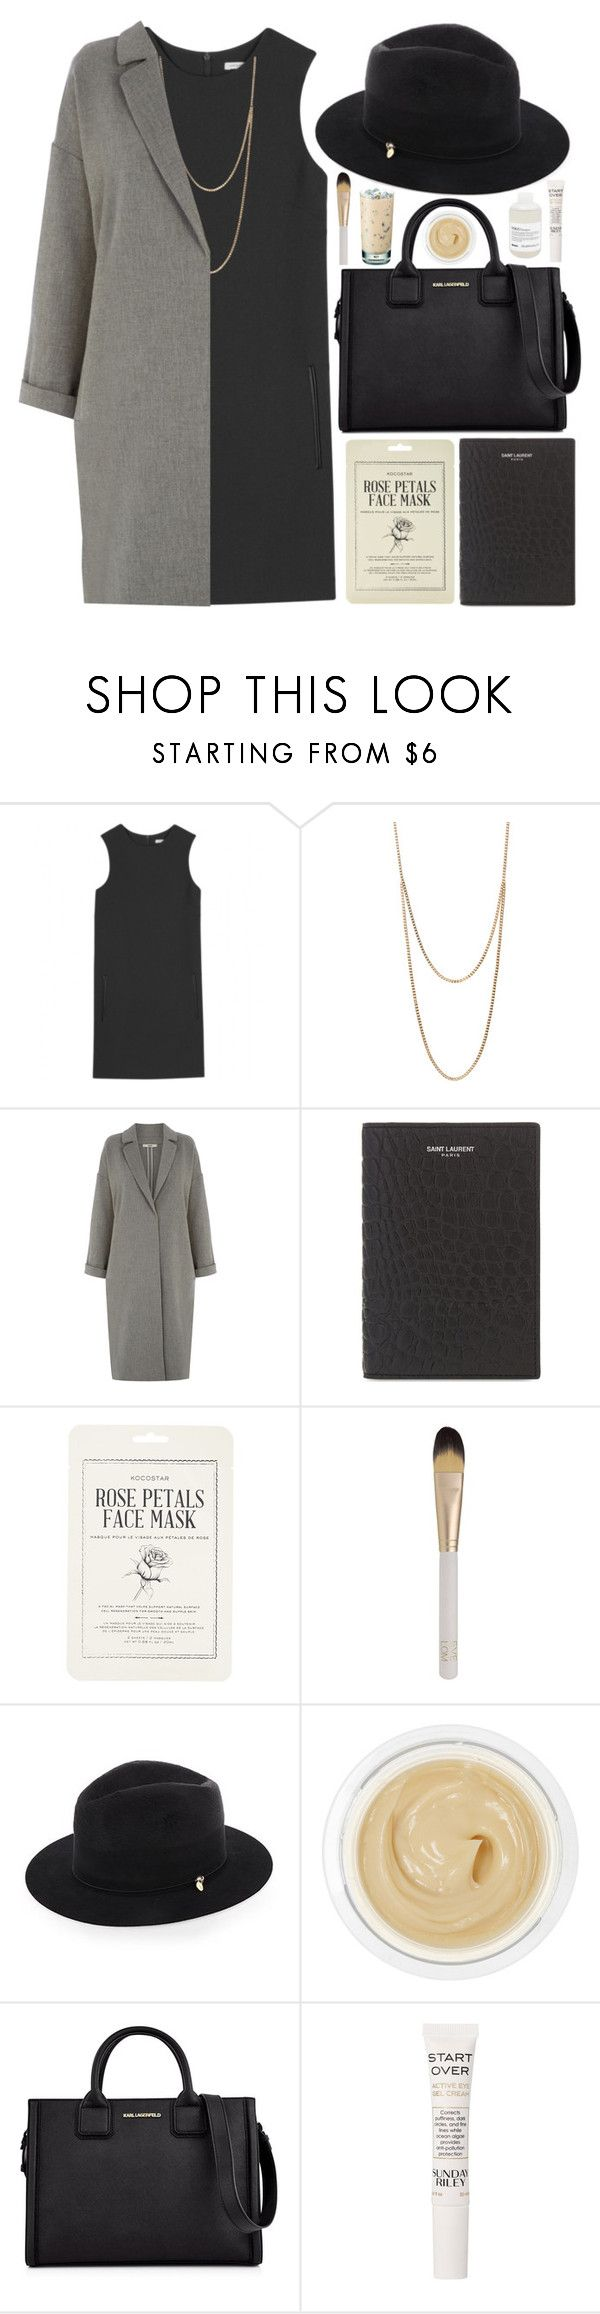 """""""LOVE PLUS ONE"""" by daisyprint ❤ liked on Polyvore featuring Christopher Kane, Club Manhattan, Oasis, Yves Saint Laurent, Forever 21, Eve Lom, Federica Moretti, Chantecaille, Karl Lagerfeld and Sunday Riley"""